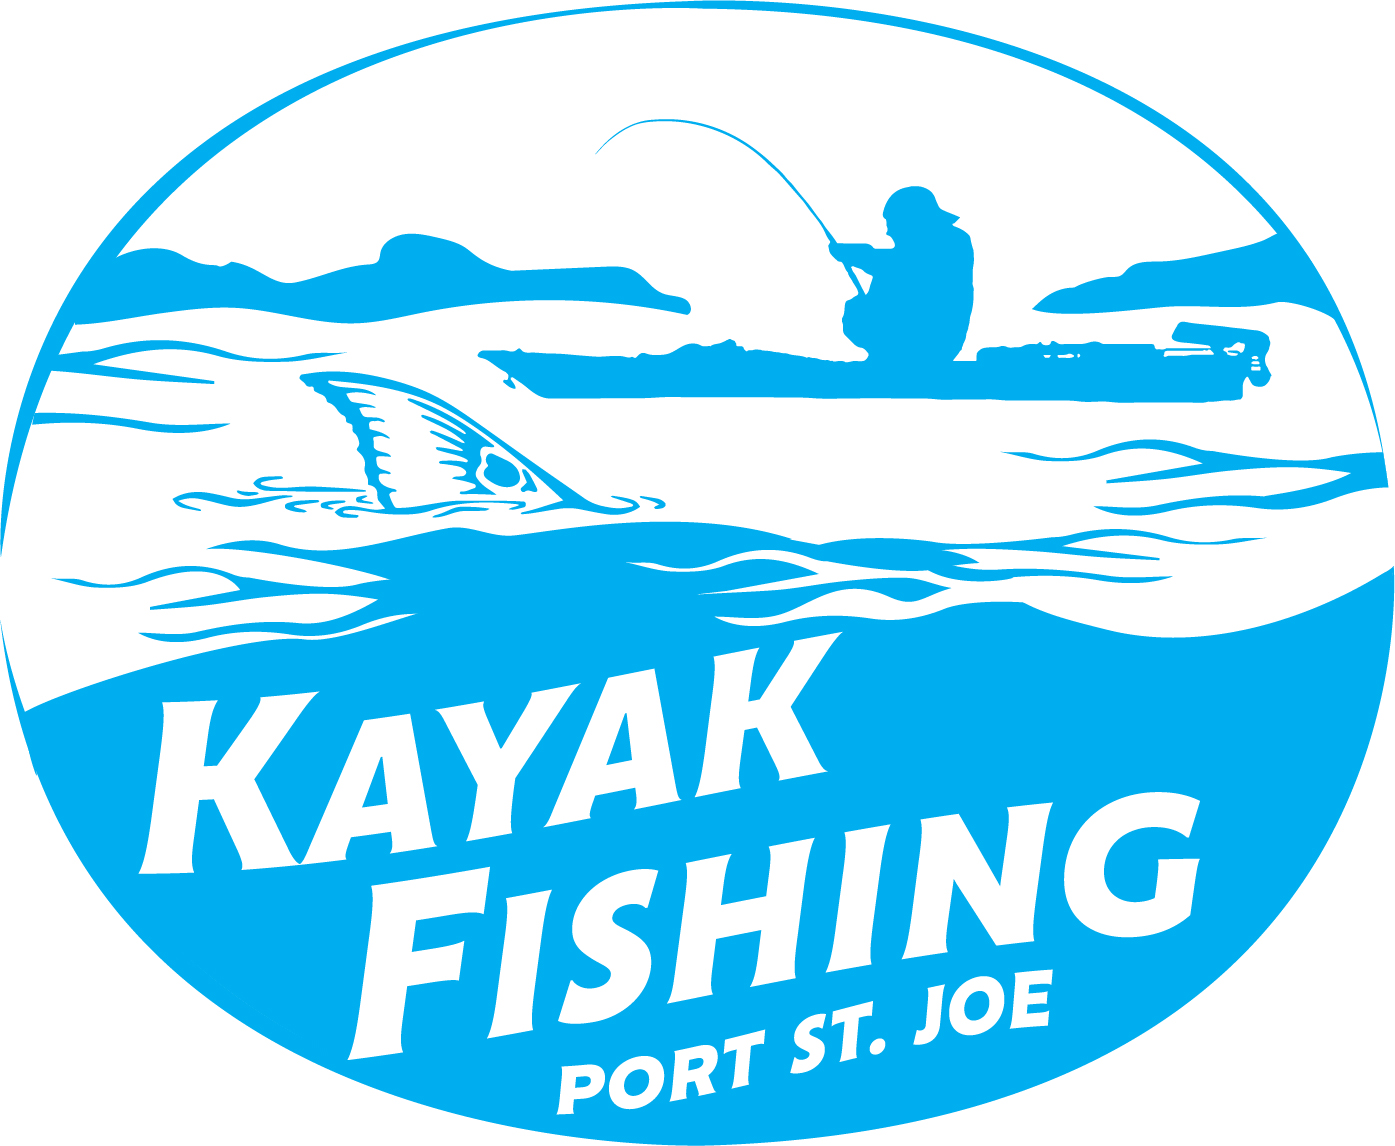 Kayak Fishing PSJ logo-teal.jpg